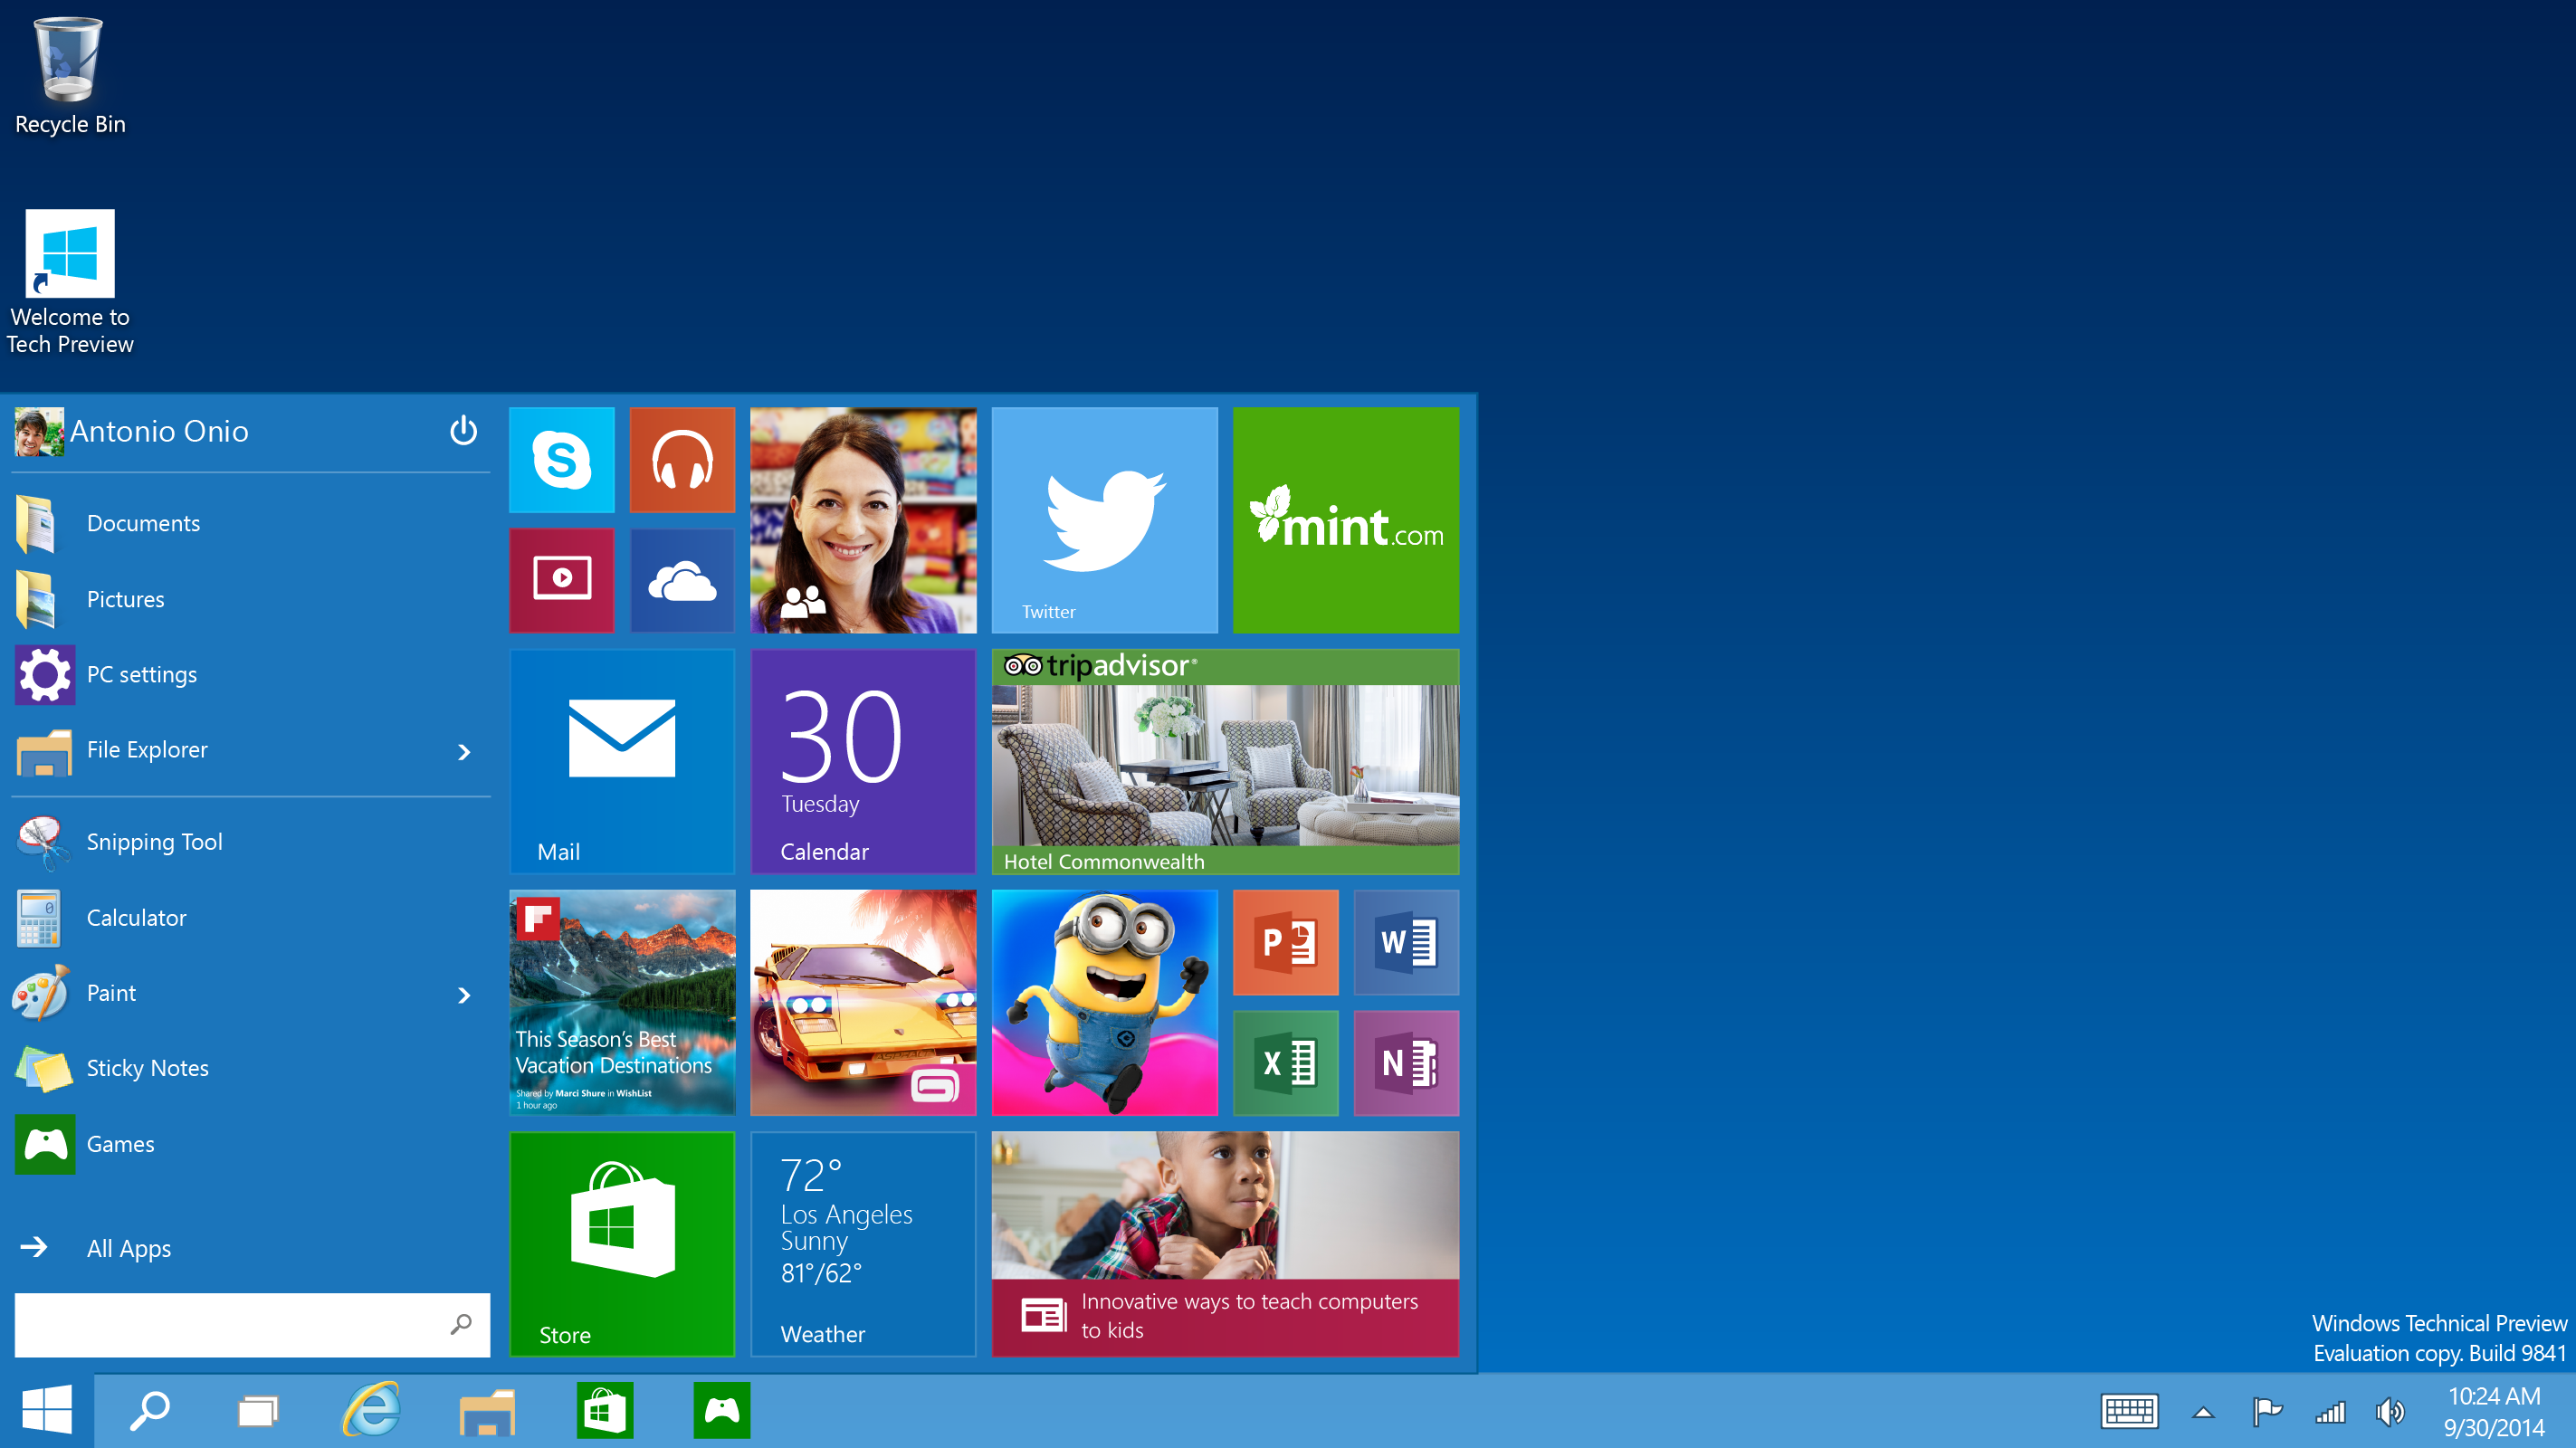 Tech Preview Start menu - Microsoft Unveils Windows 10 with Major Improvements [Download Link Here]